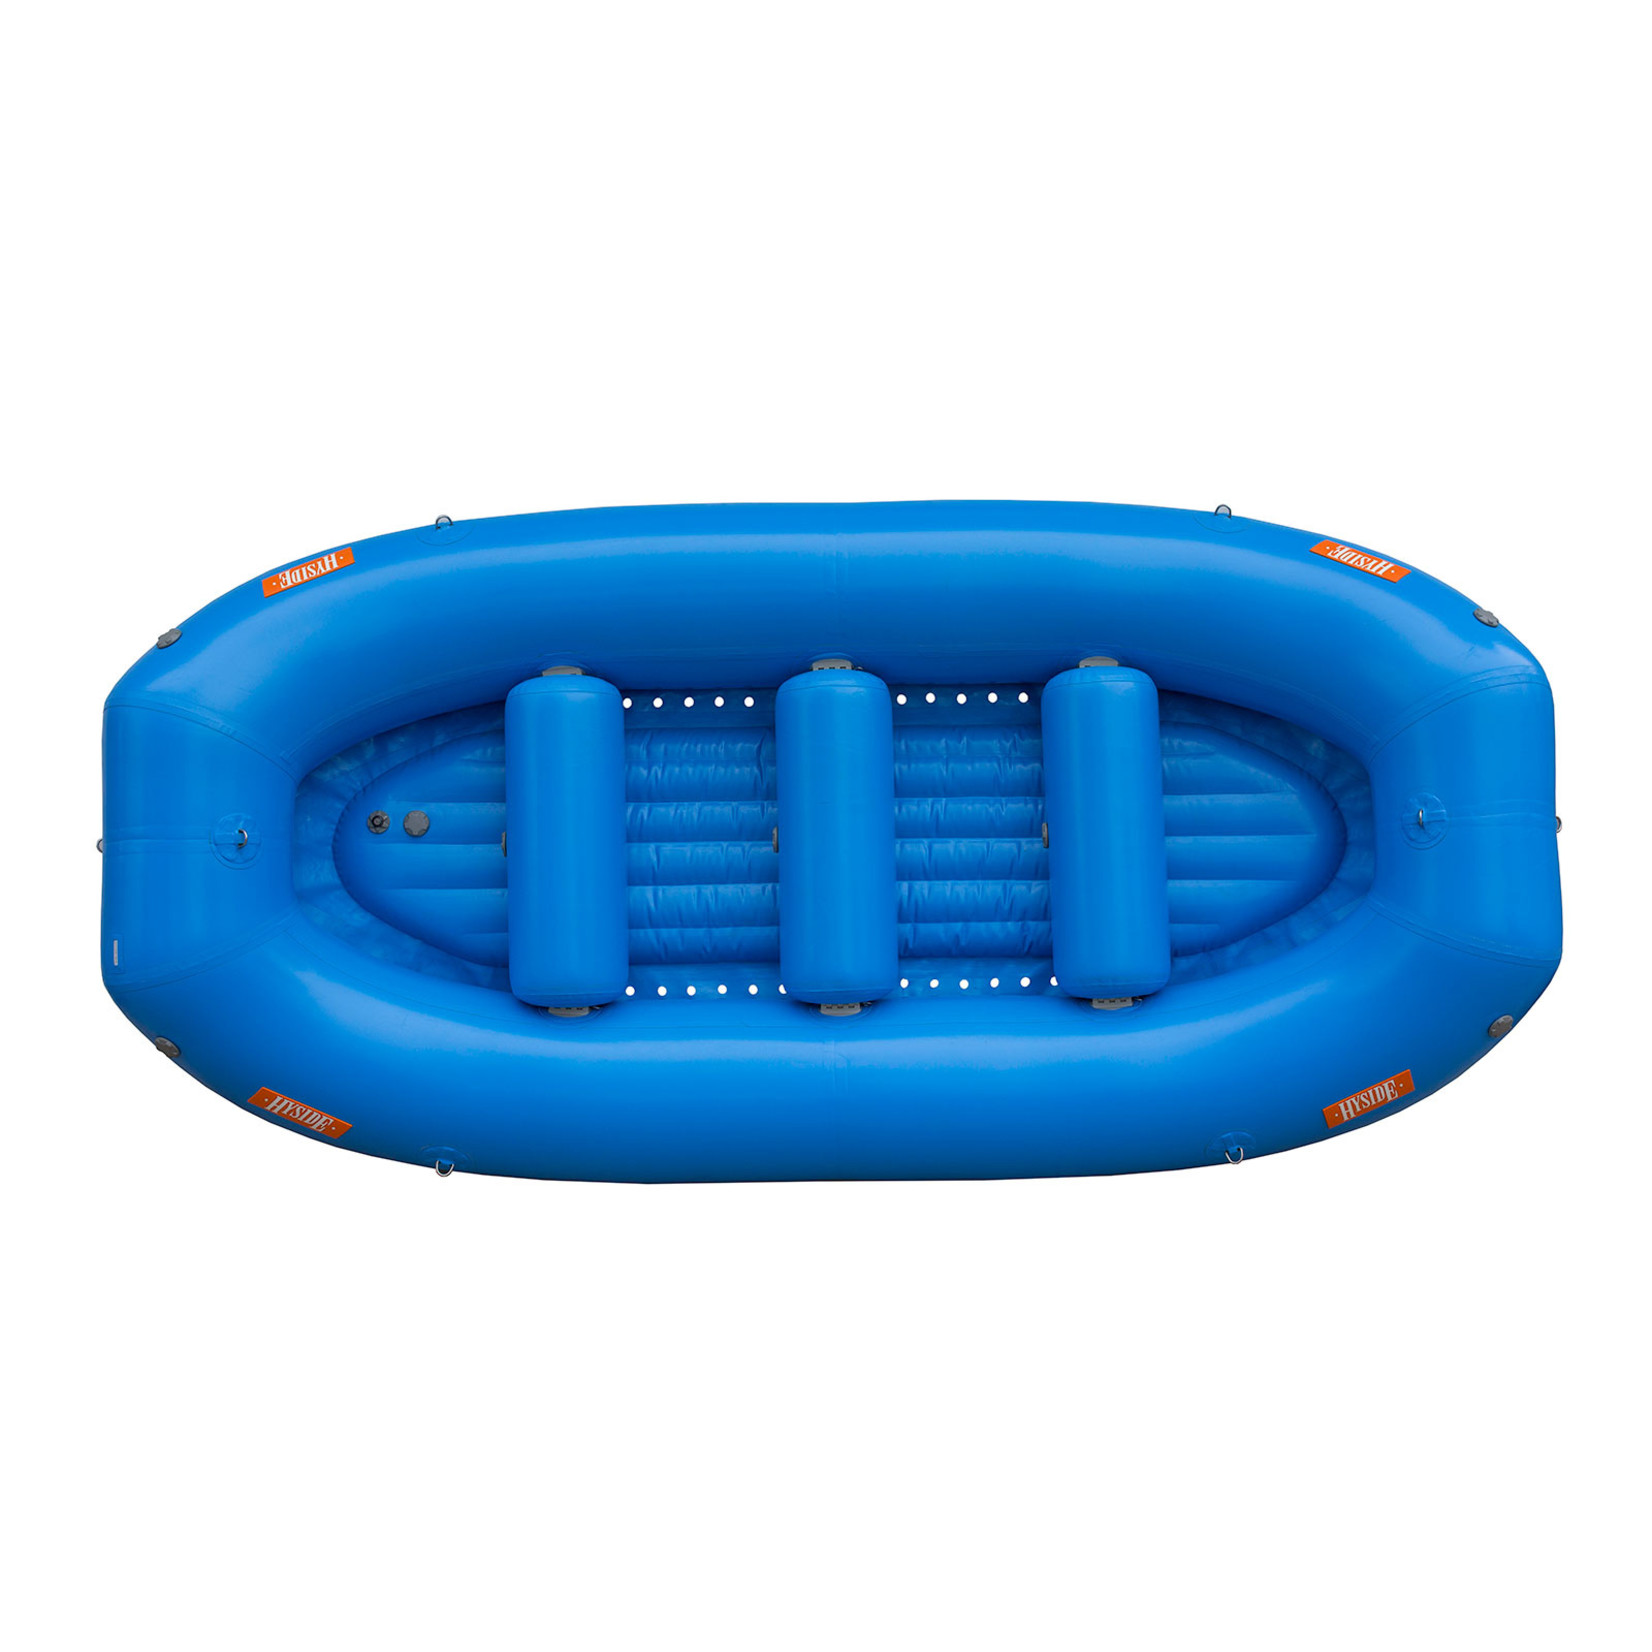 Hyside Inflatables Hyside Outfitter Max 12 Raft